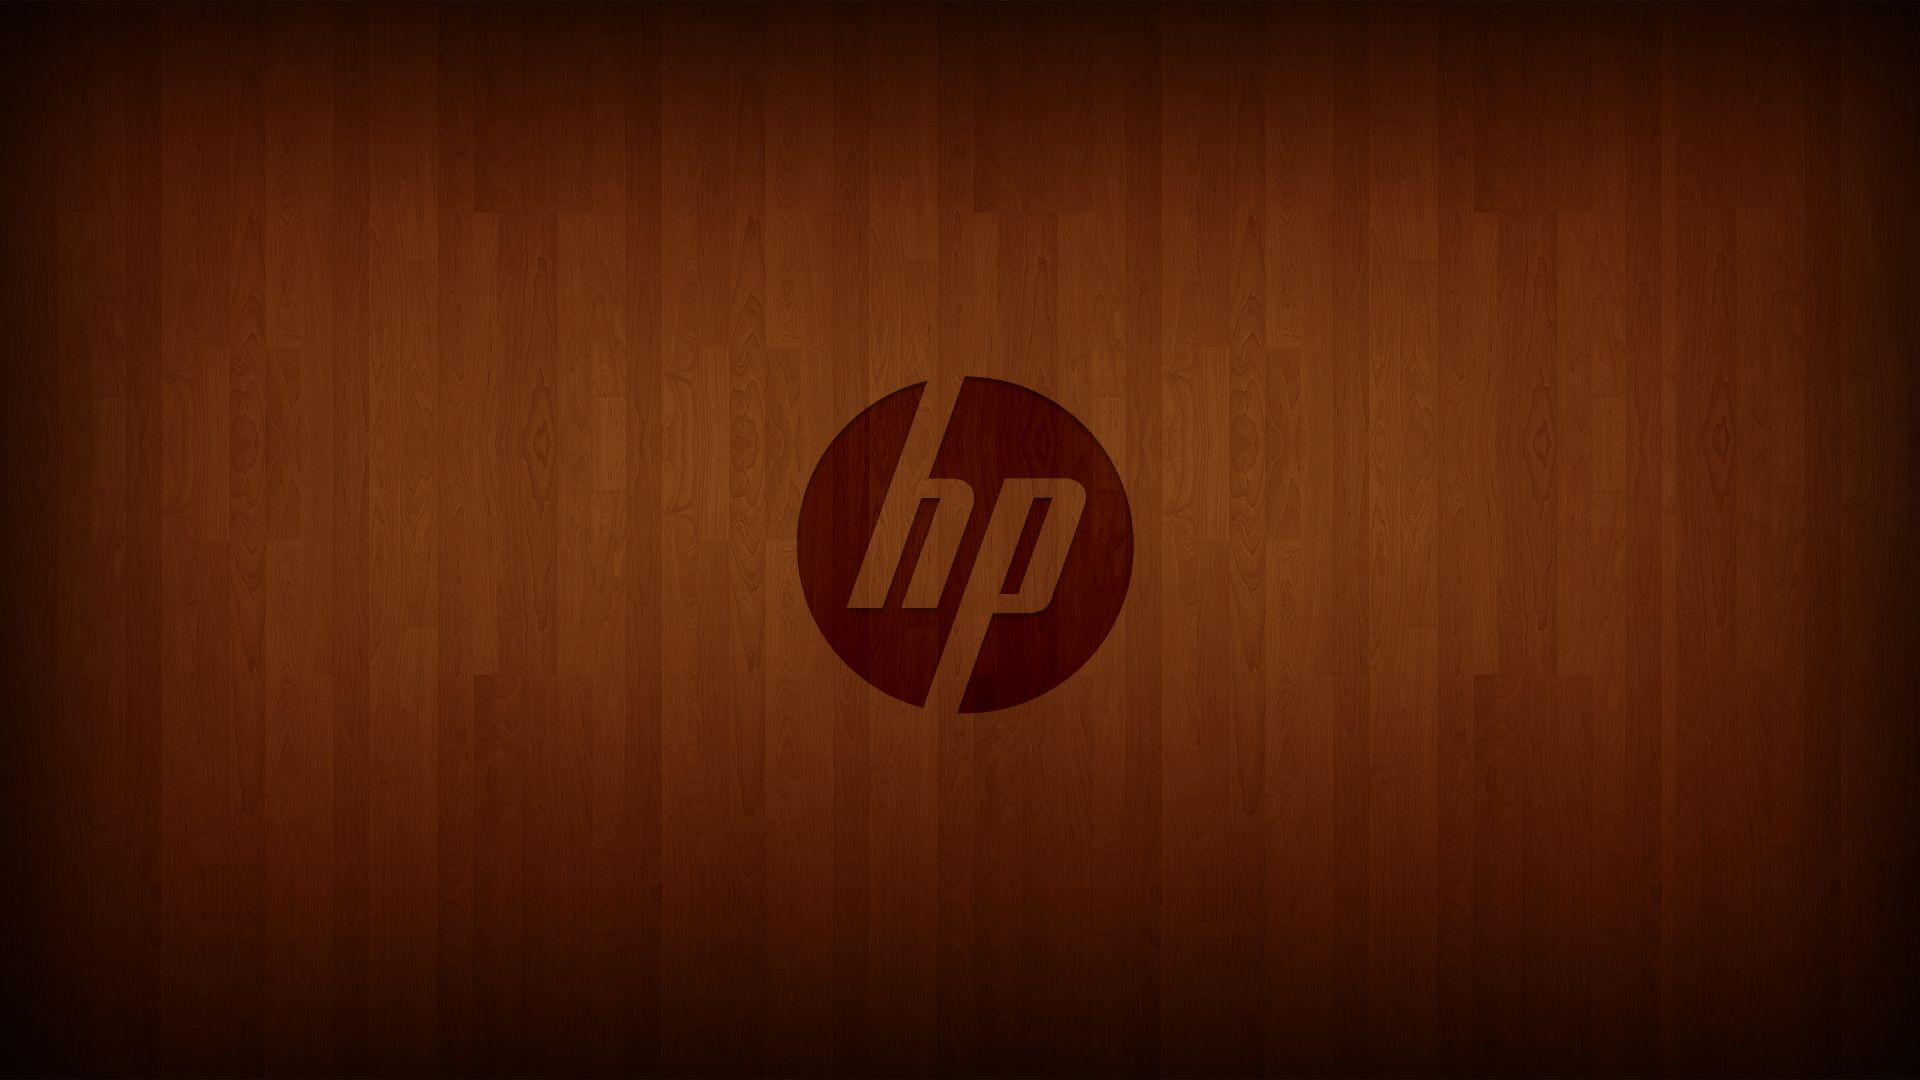 Hp Wallpaper For Laptop Wallpaper images hd Cool wallpapers for 1920x1080